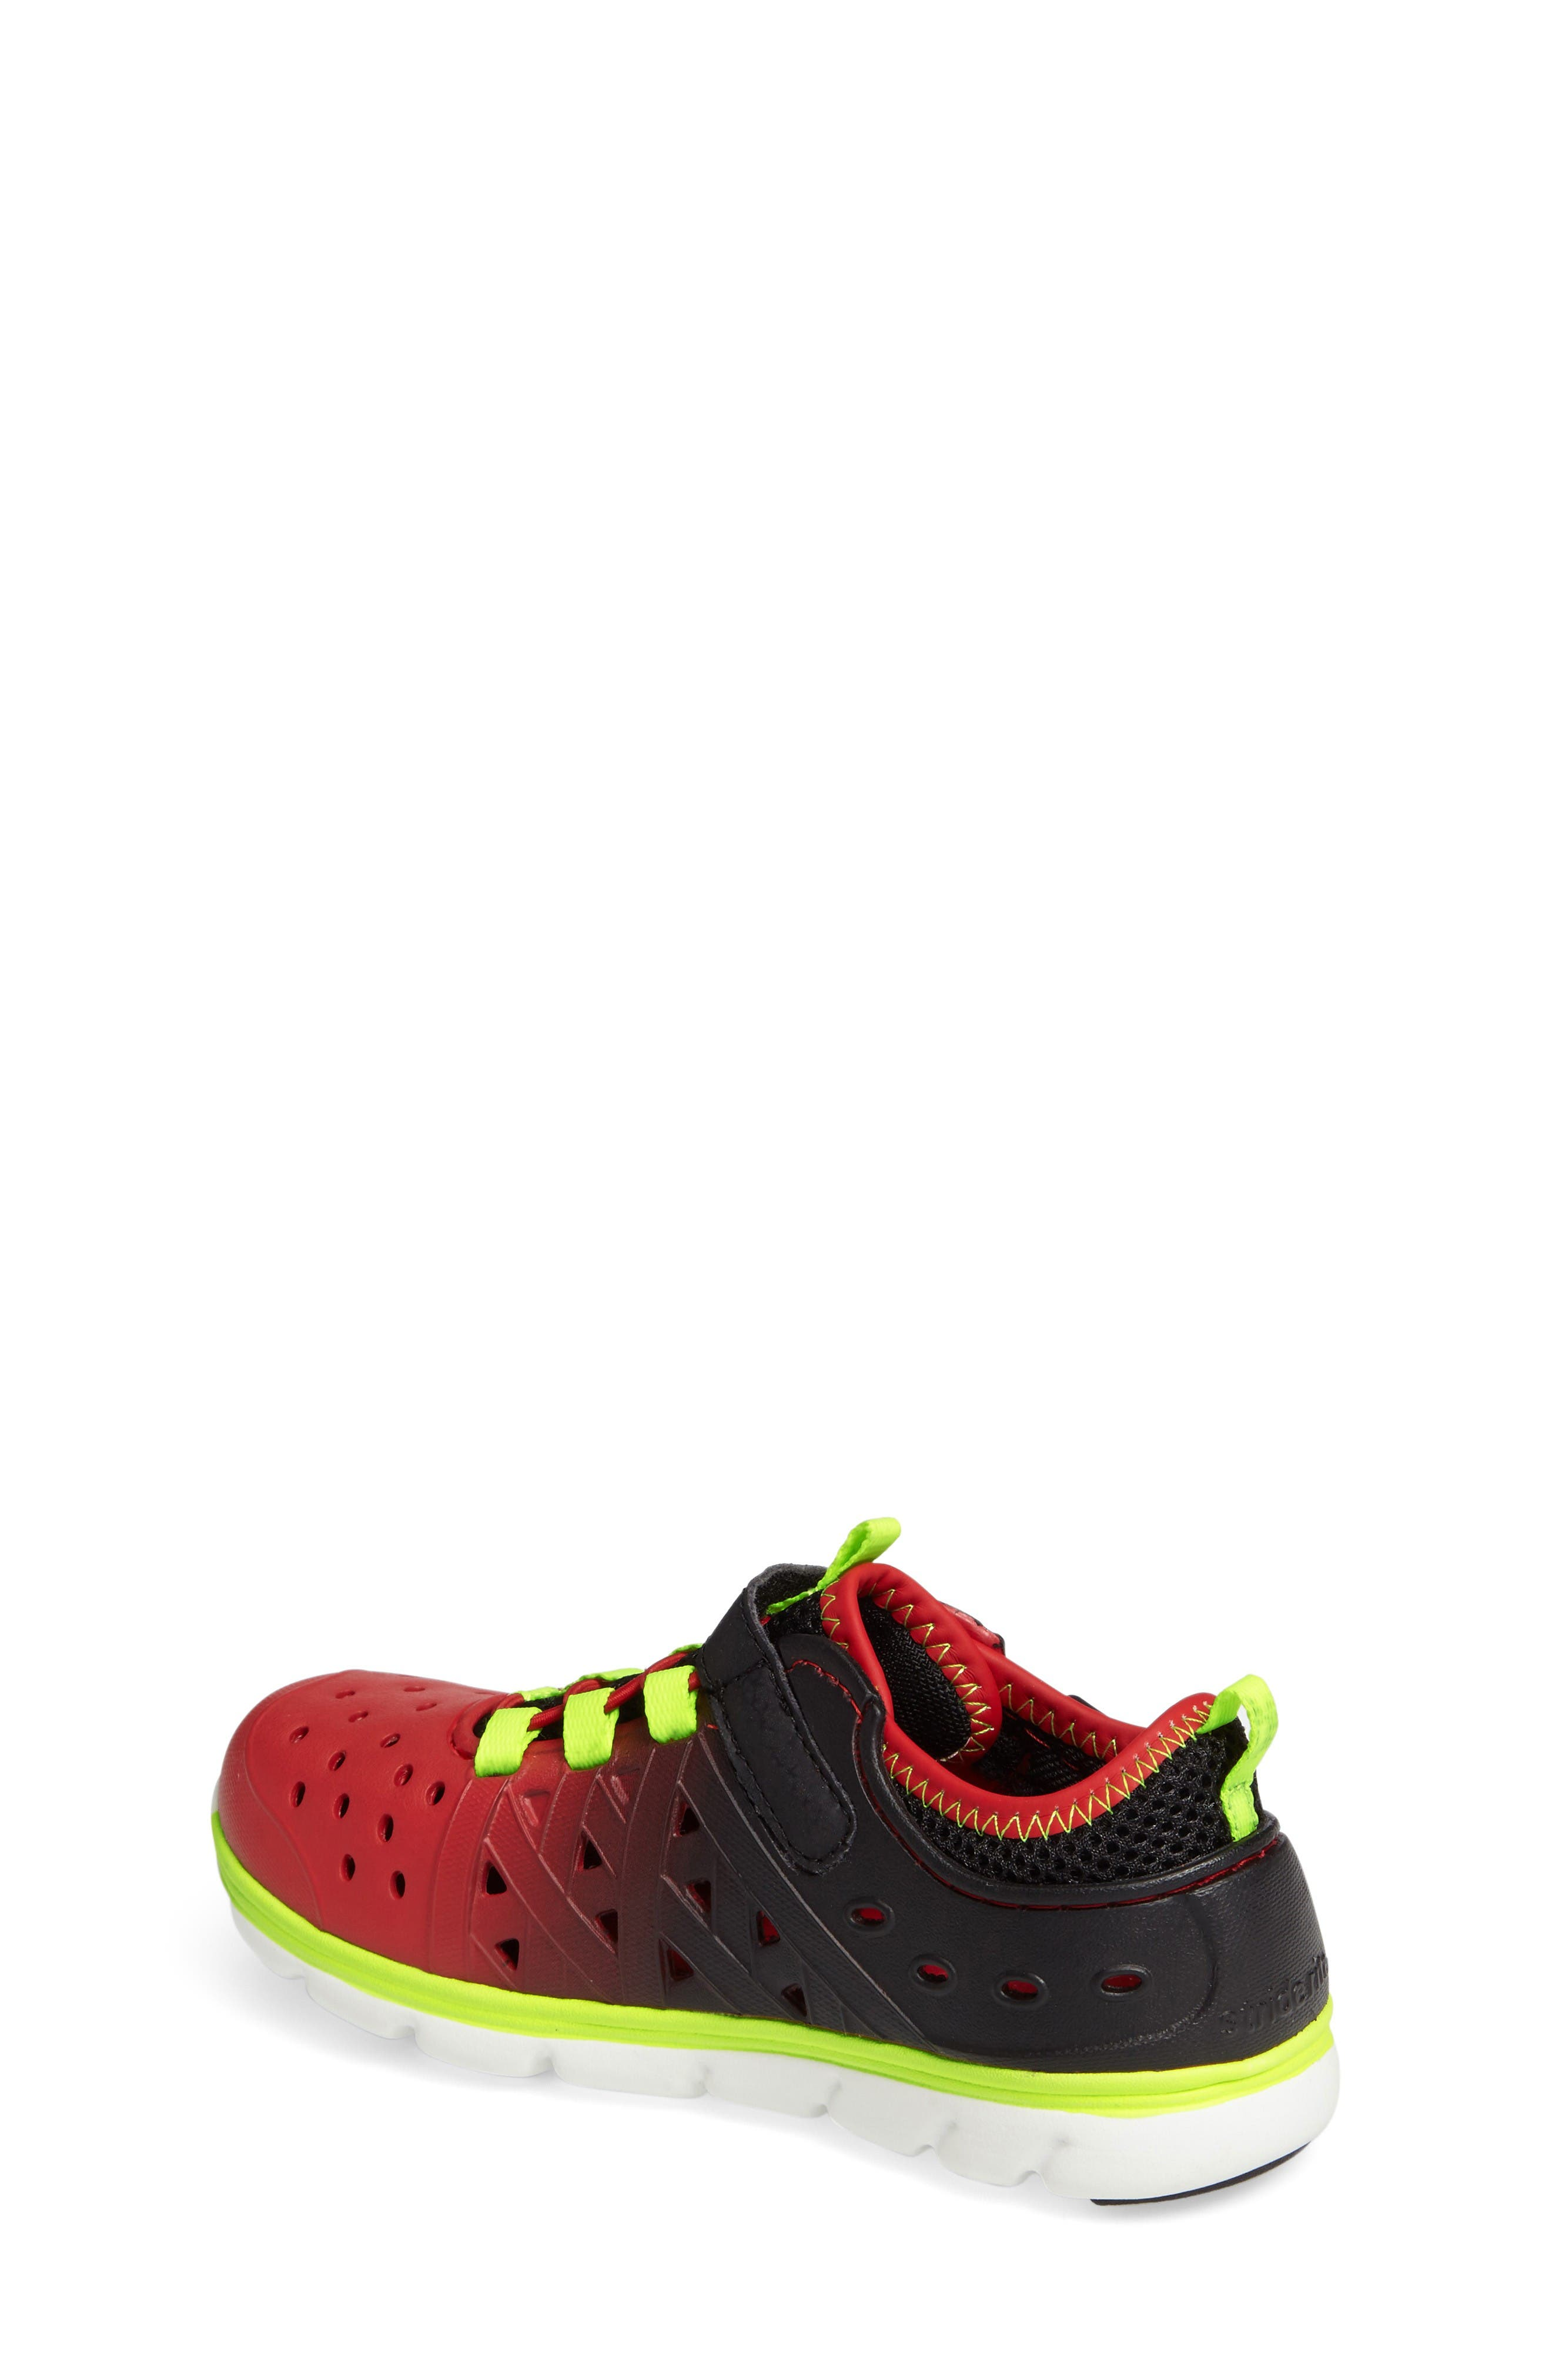 Made2Play<sup>®</sup> Phibian Sneaker,                             Alternate thumbnail 2, color,                             Black/ Red